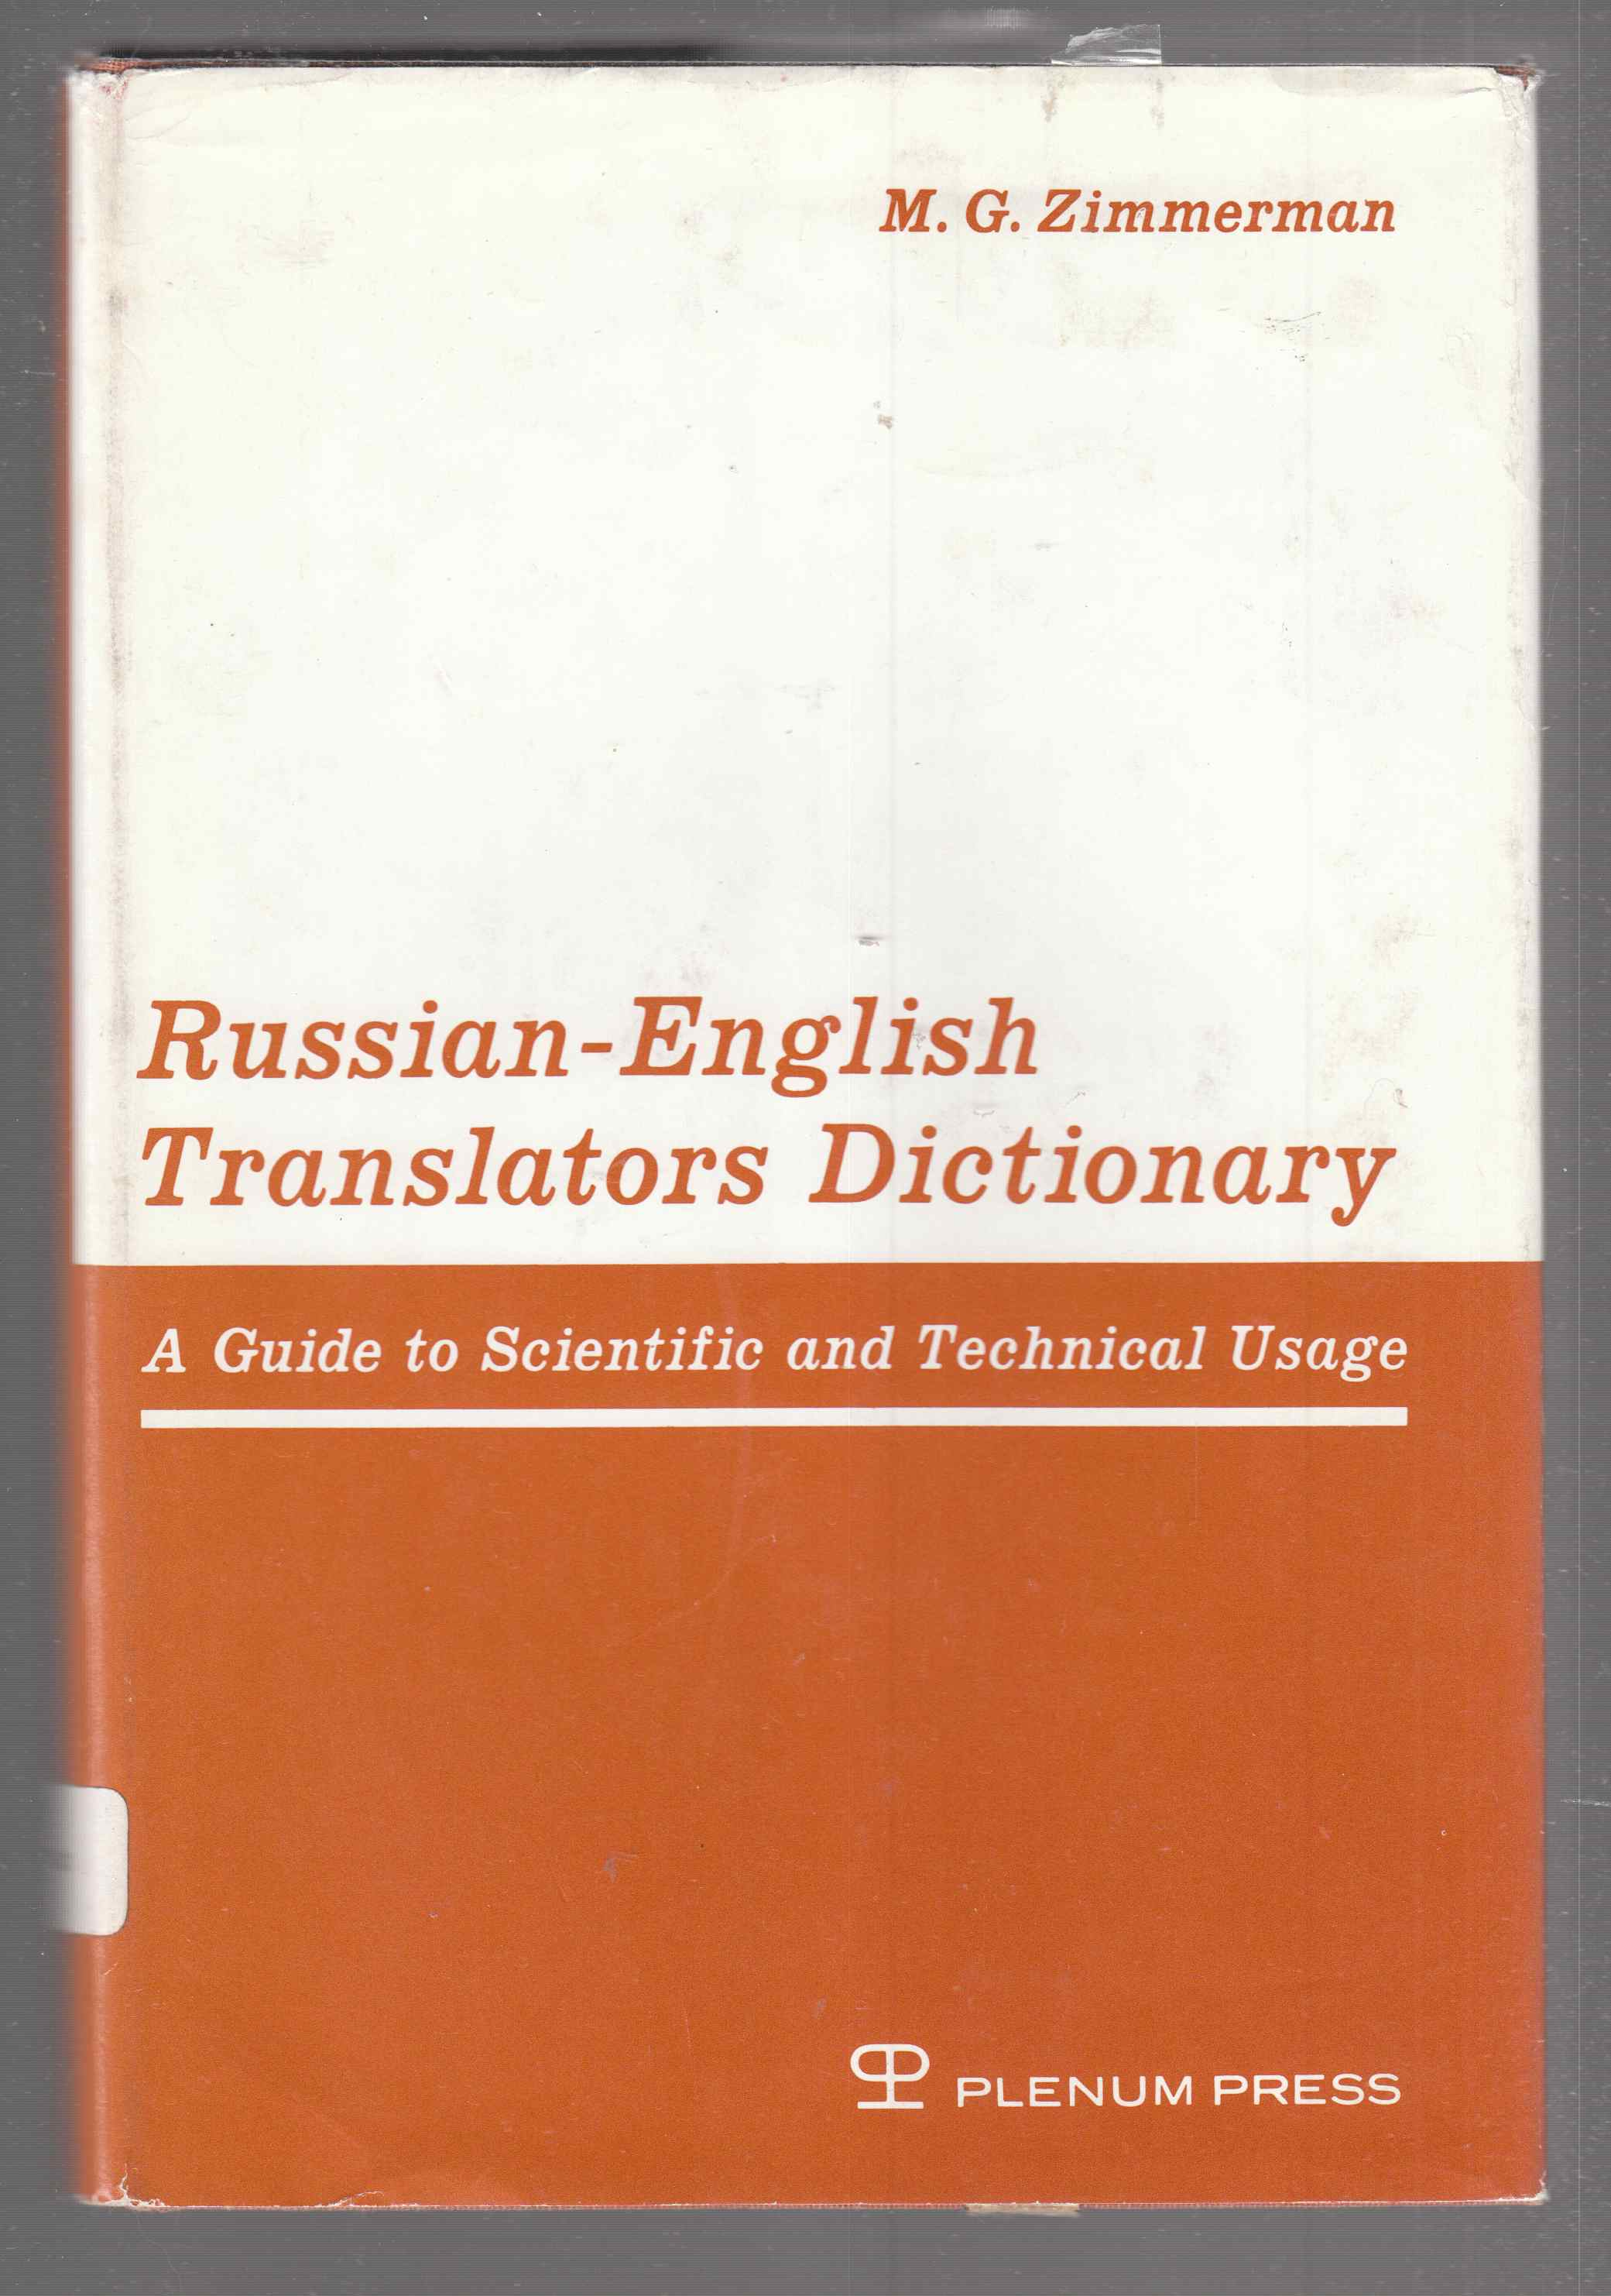 Image for Russian-English Translators Dictionary A Guide to Scientific and Technical Usage